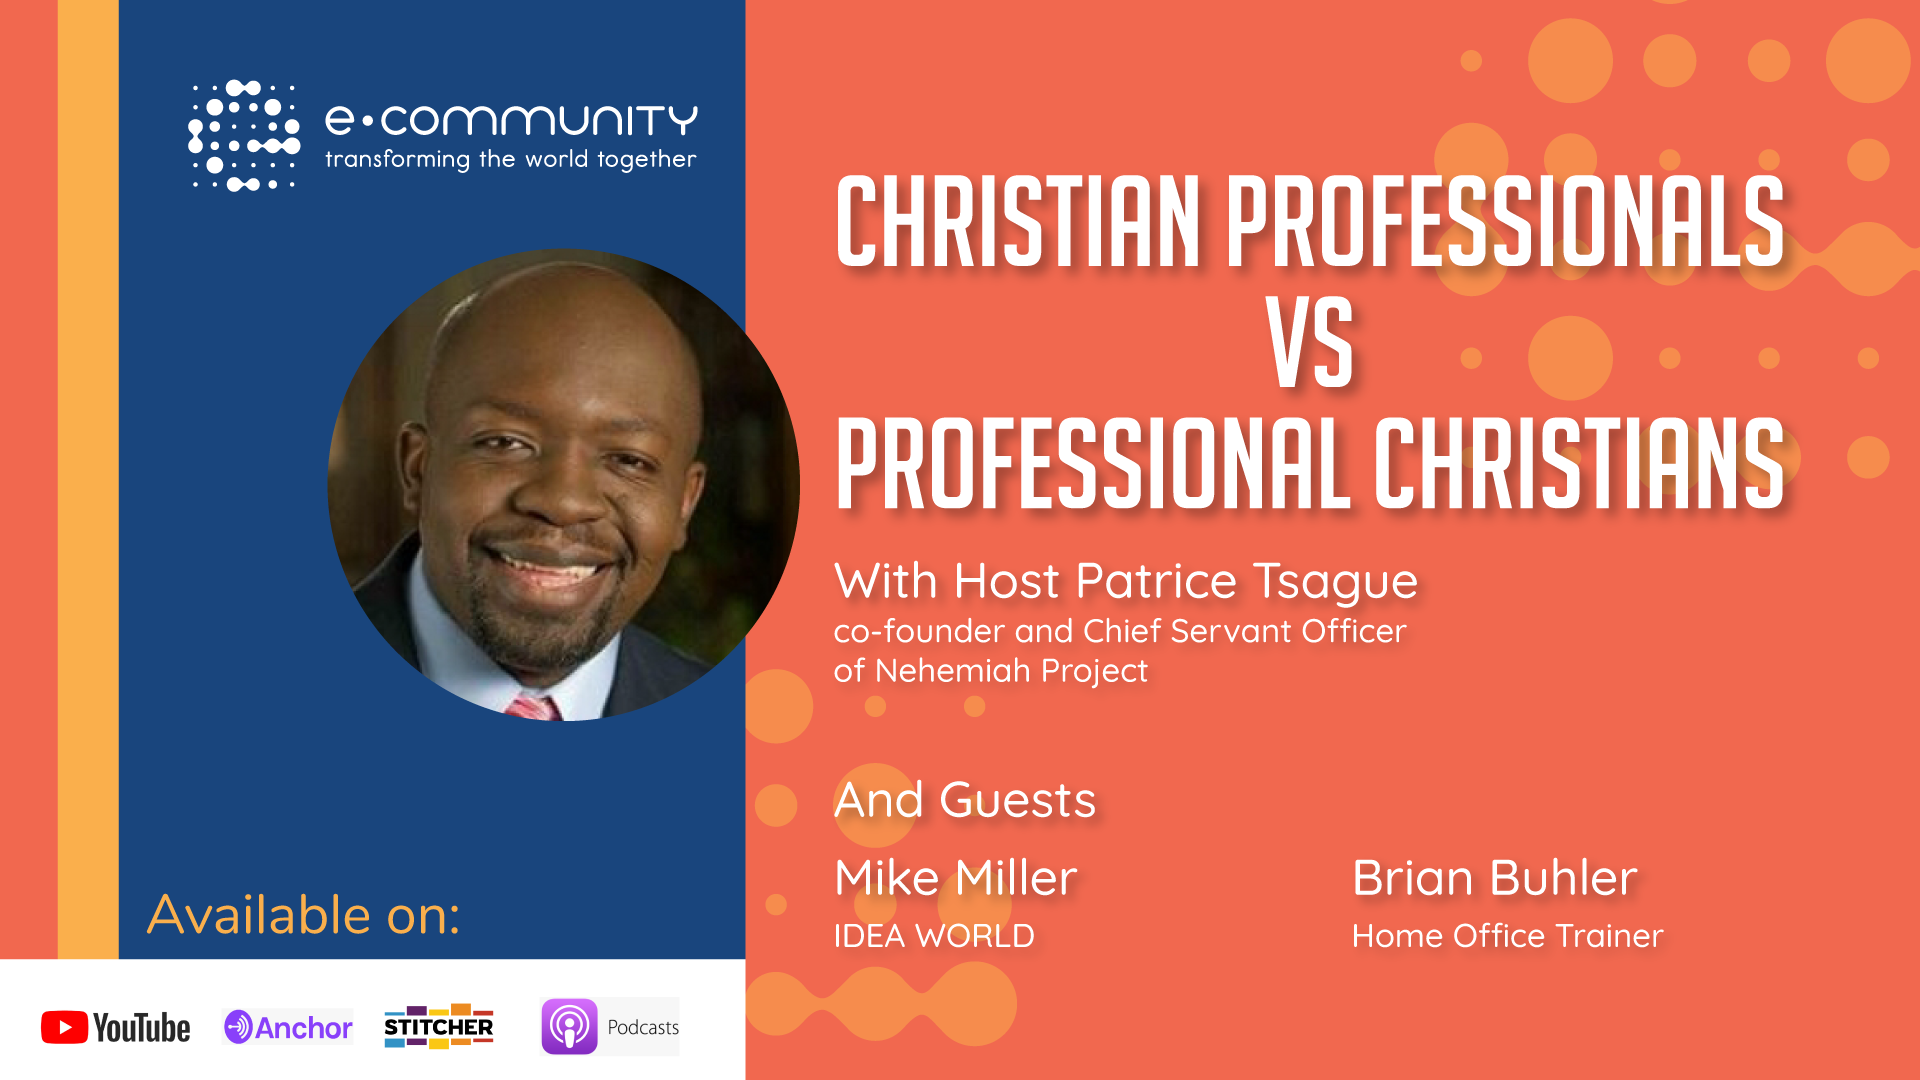 Christian Professionals vs Professional Christians